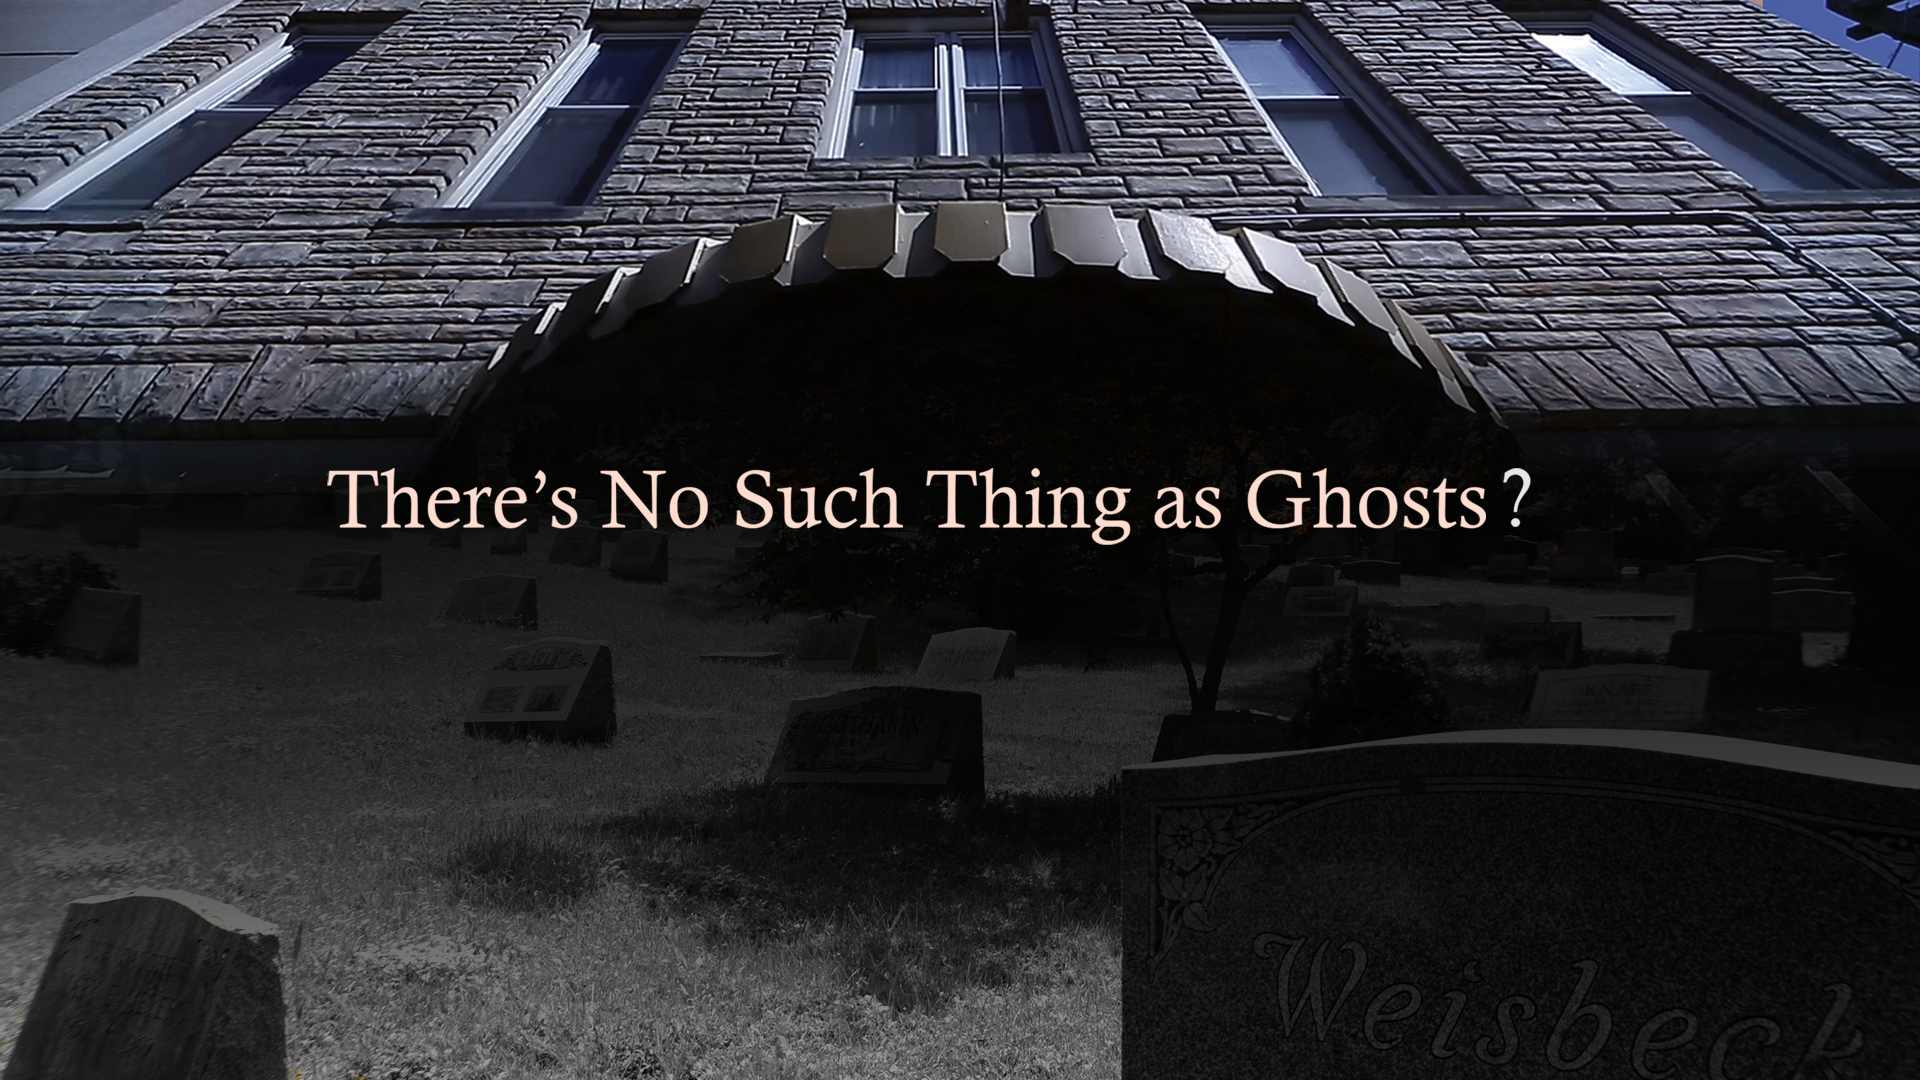 There's No Such Thing as Ghosts?